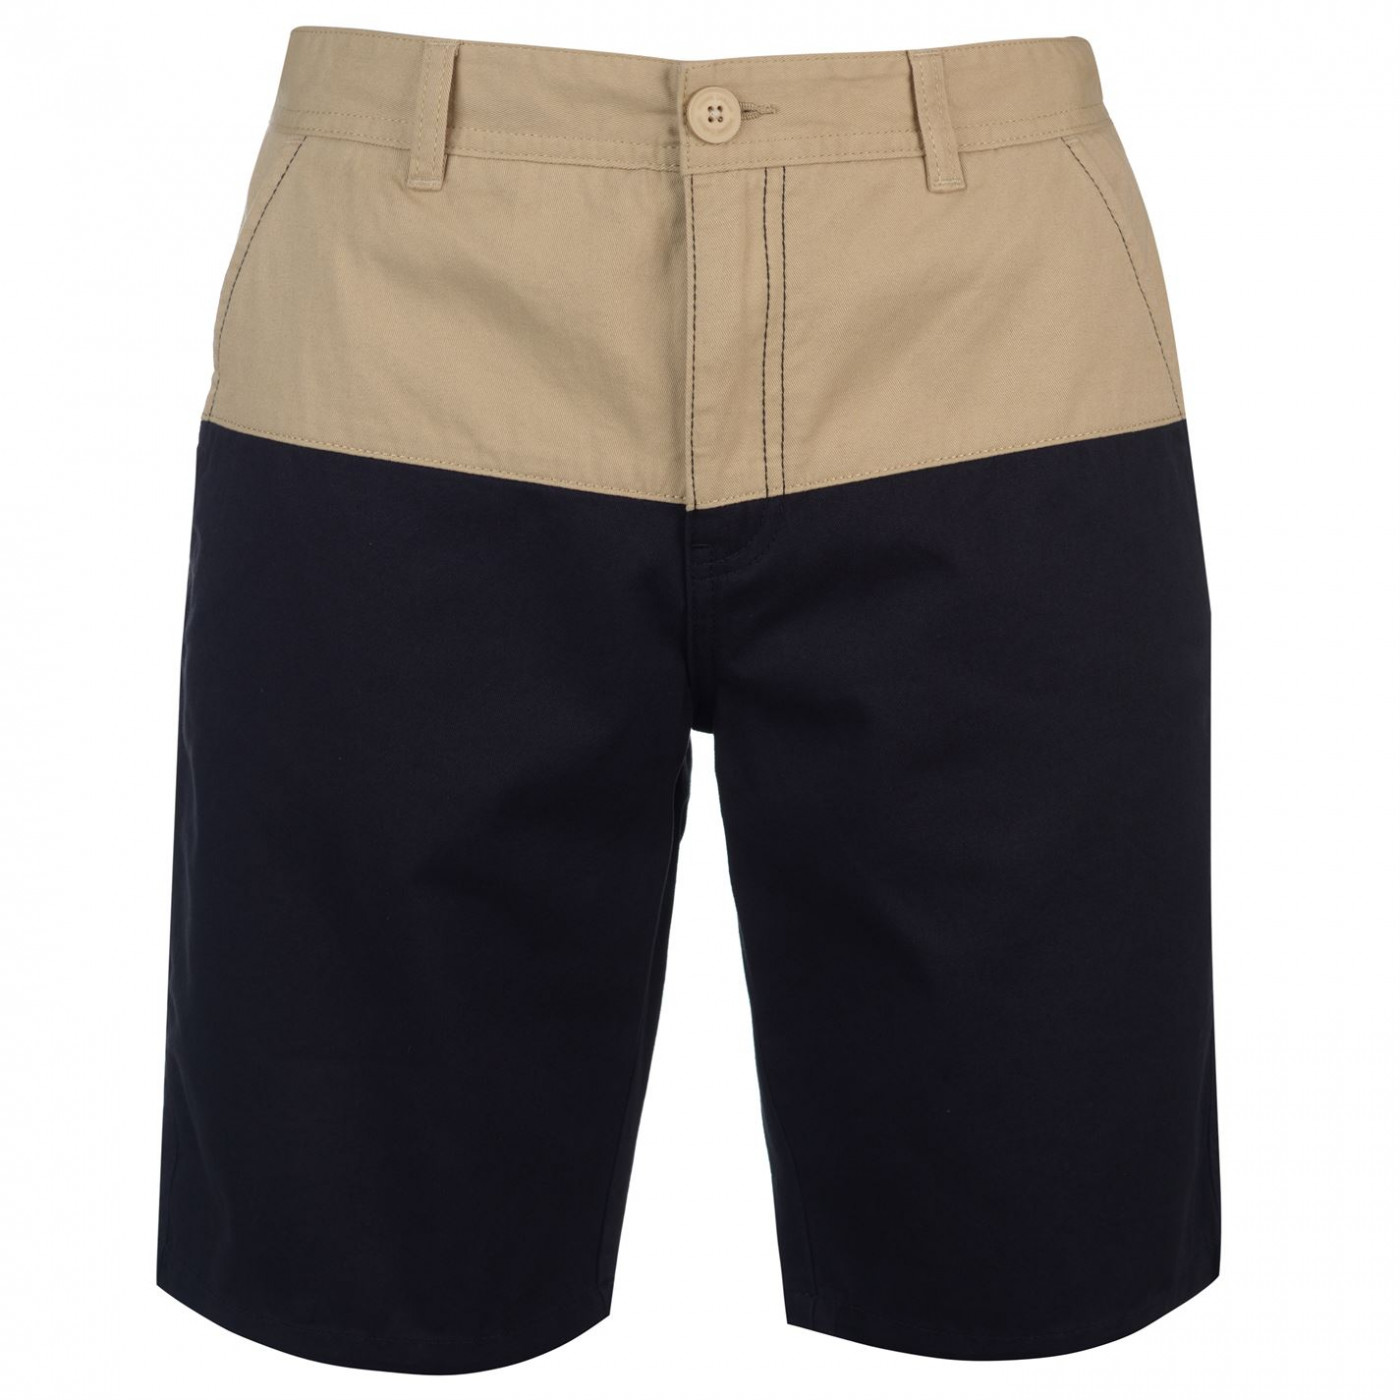 Pierre Cardin Panel Chino Shorts Mens